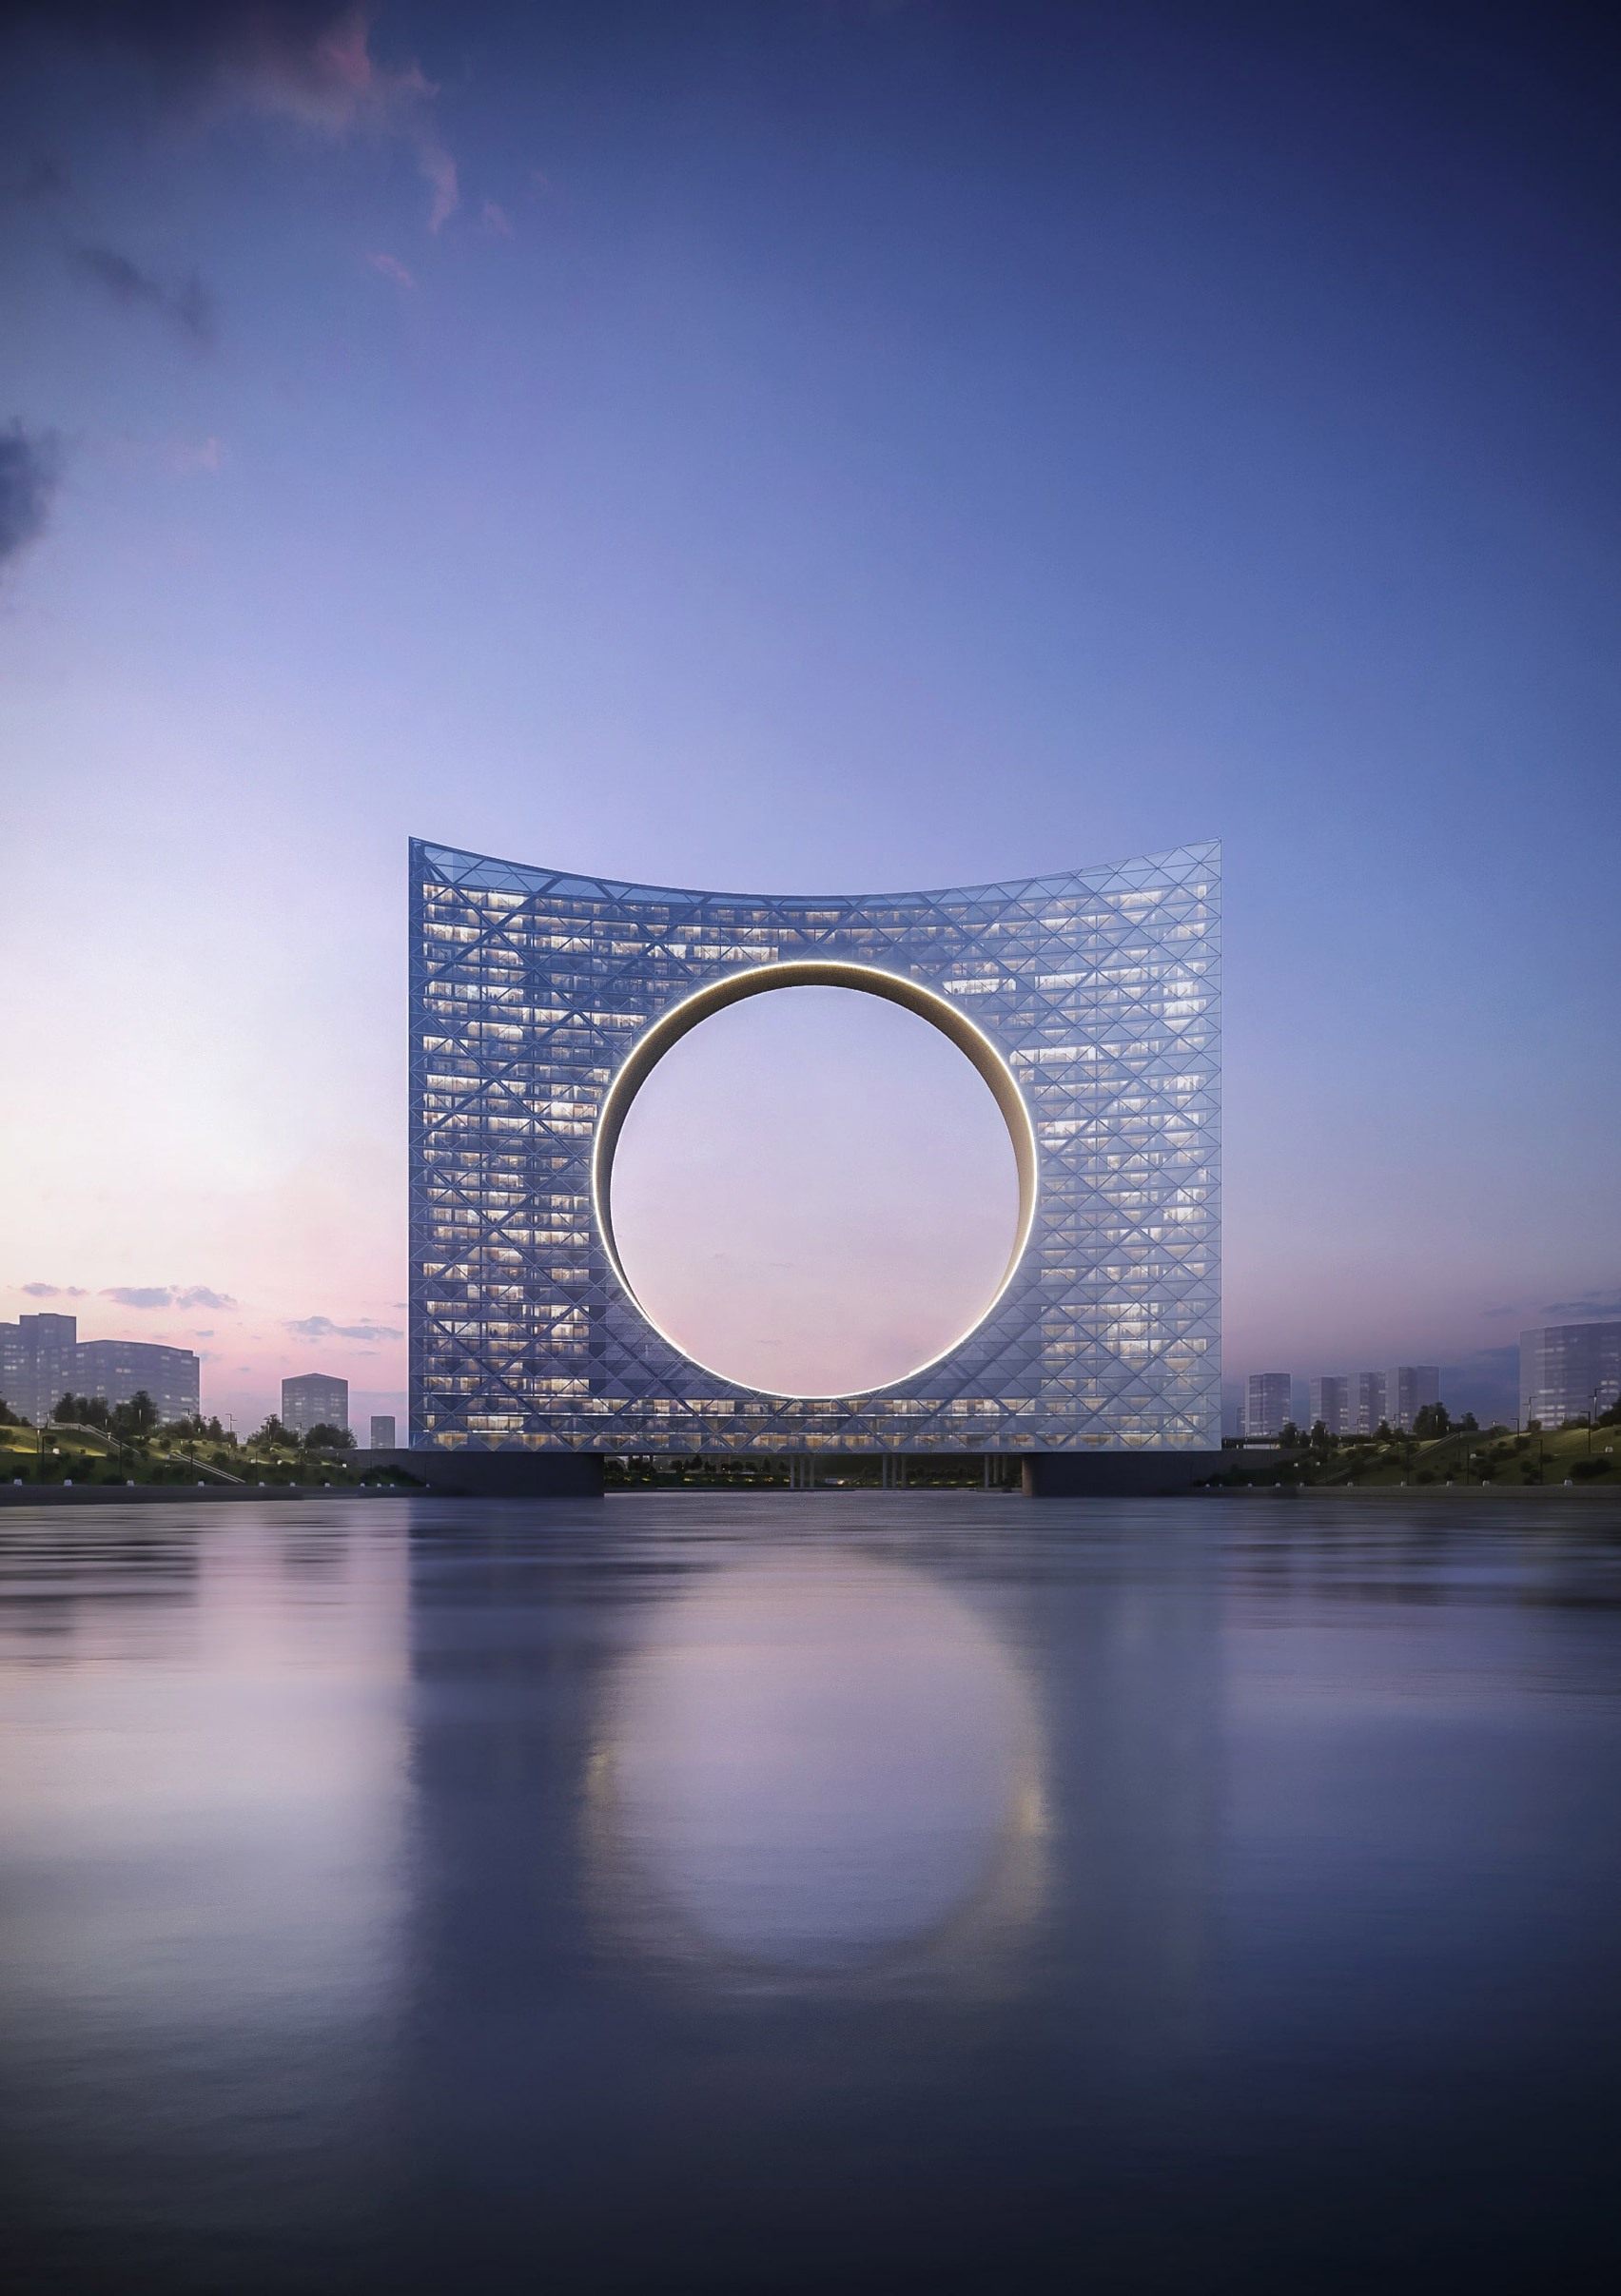 fundamental-architects-omega-render-astana-kazakhstan-flag_dezeen_1704_col_9.jpg